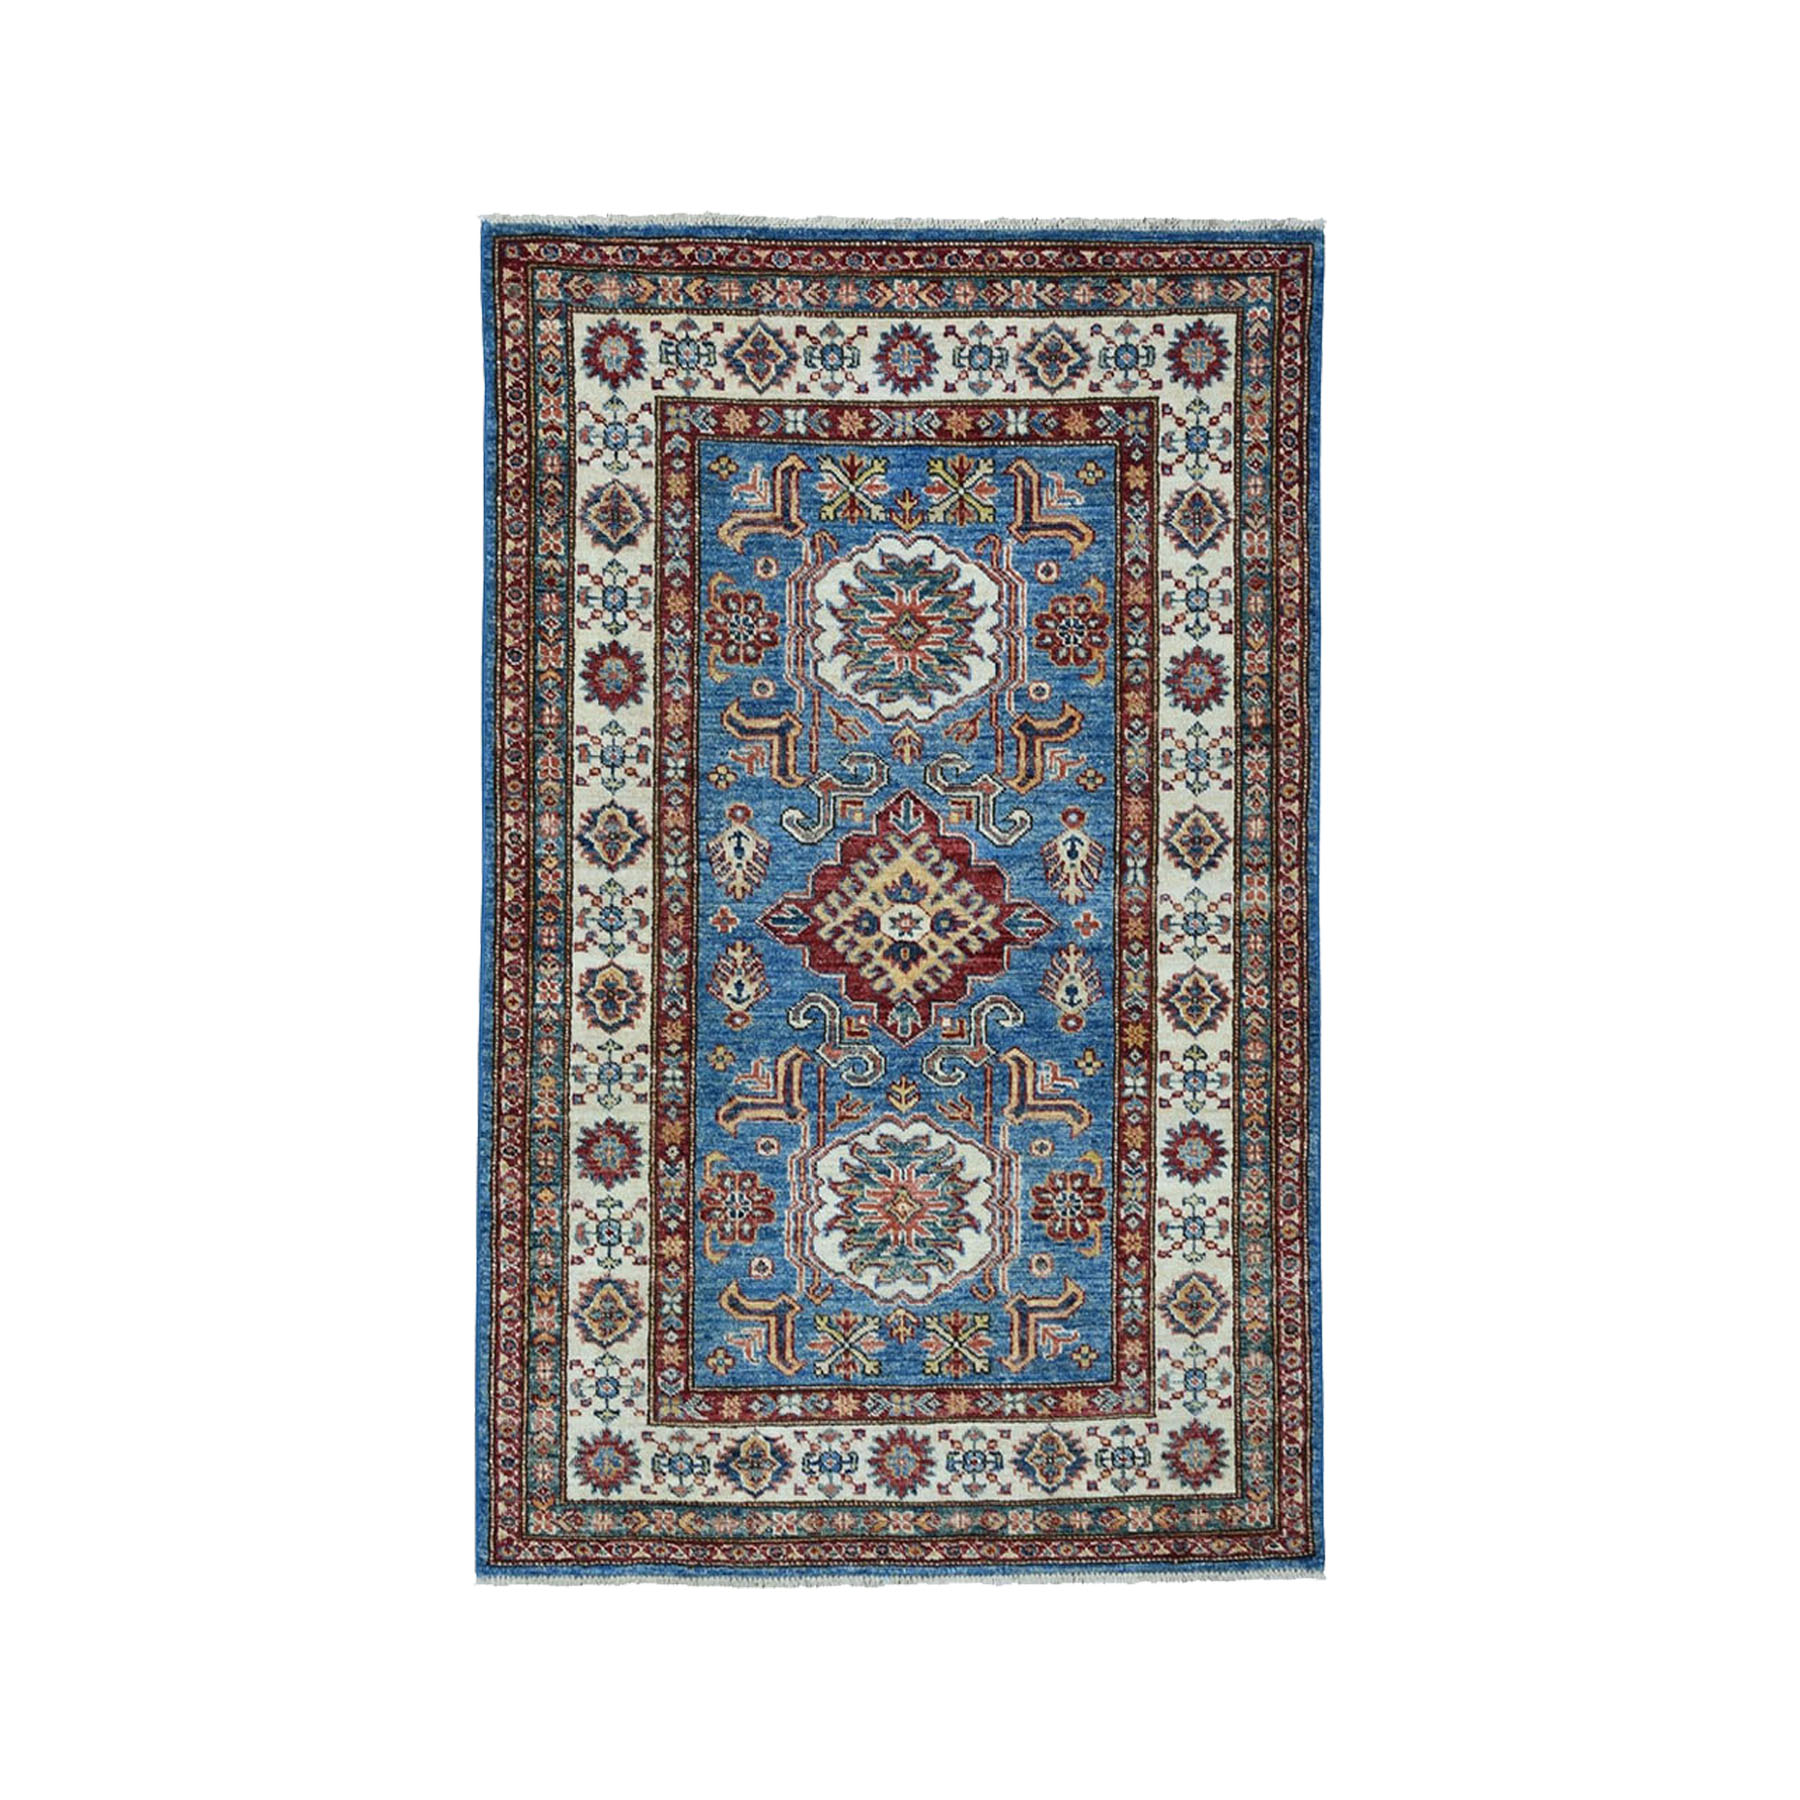 "3'3""X4'9"" Blue Super Kazak Pure Wool Geometric Design Hand-Knotted Oriental Rug moae0090"